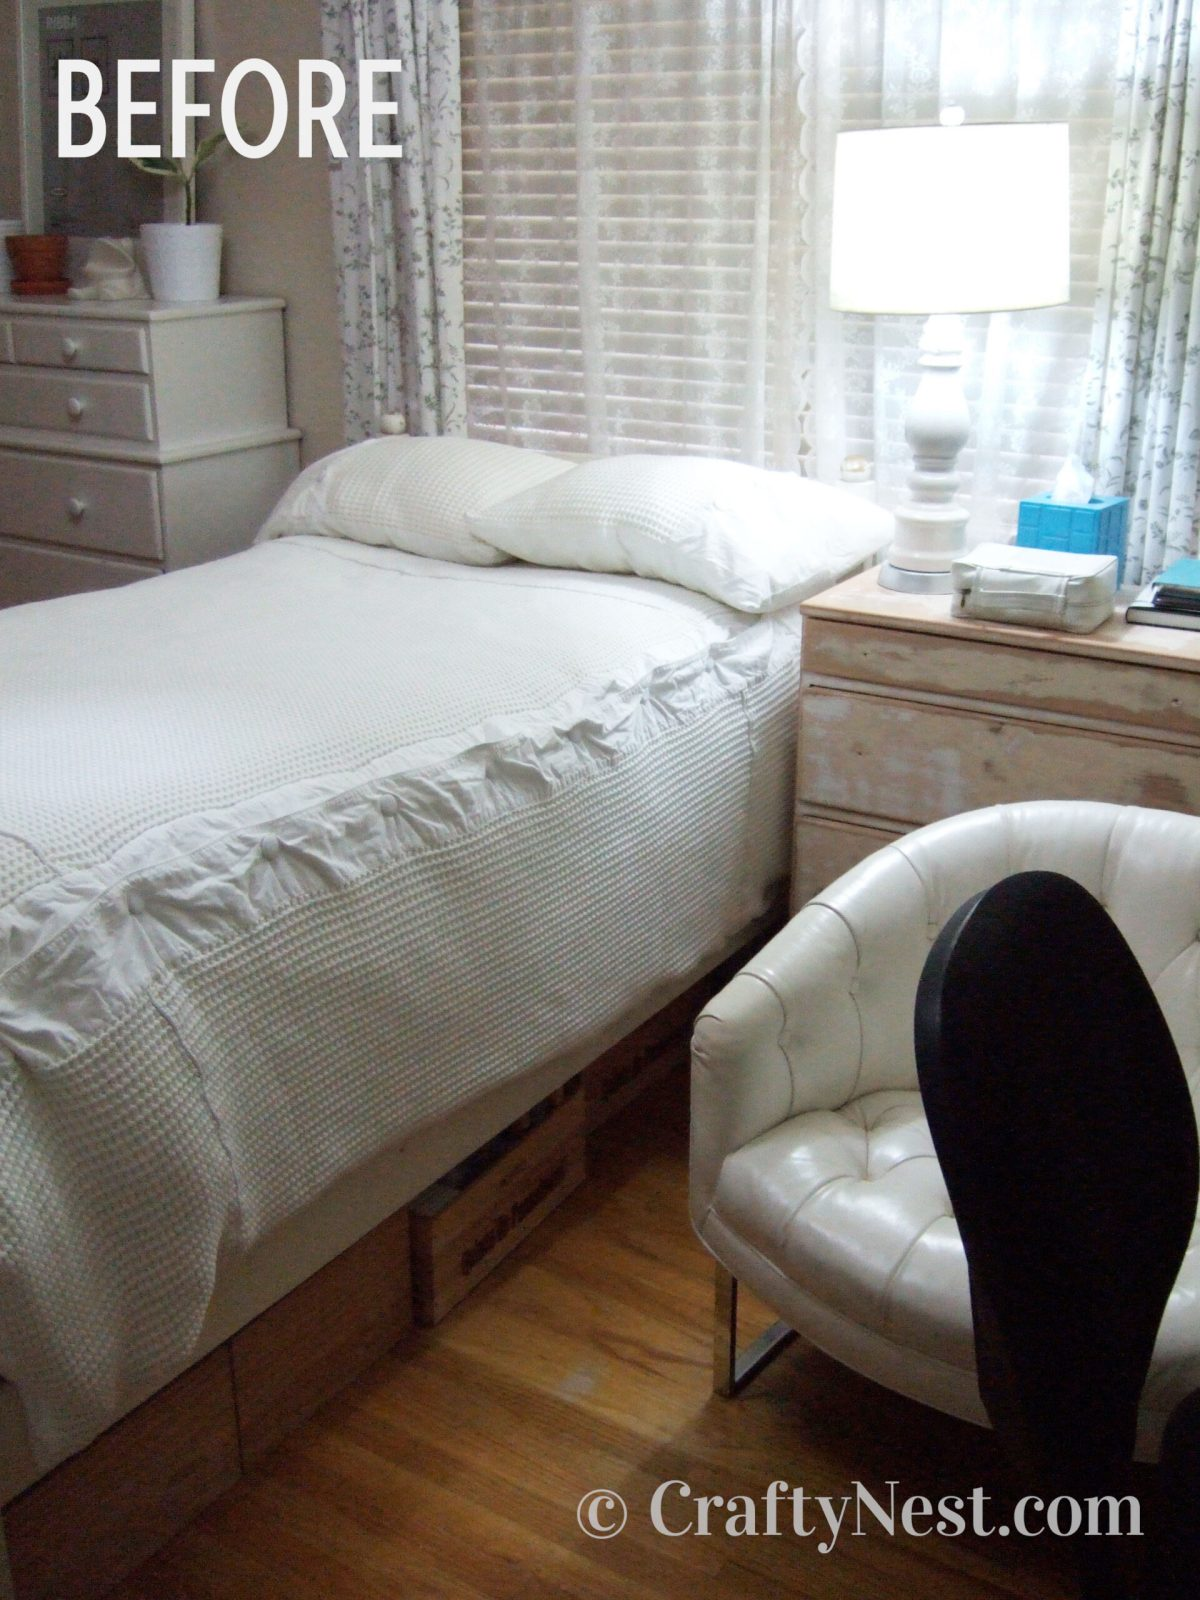 Bed and dresser, before photo